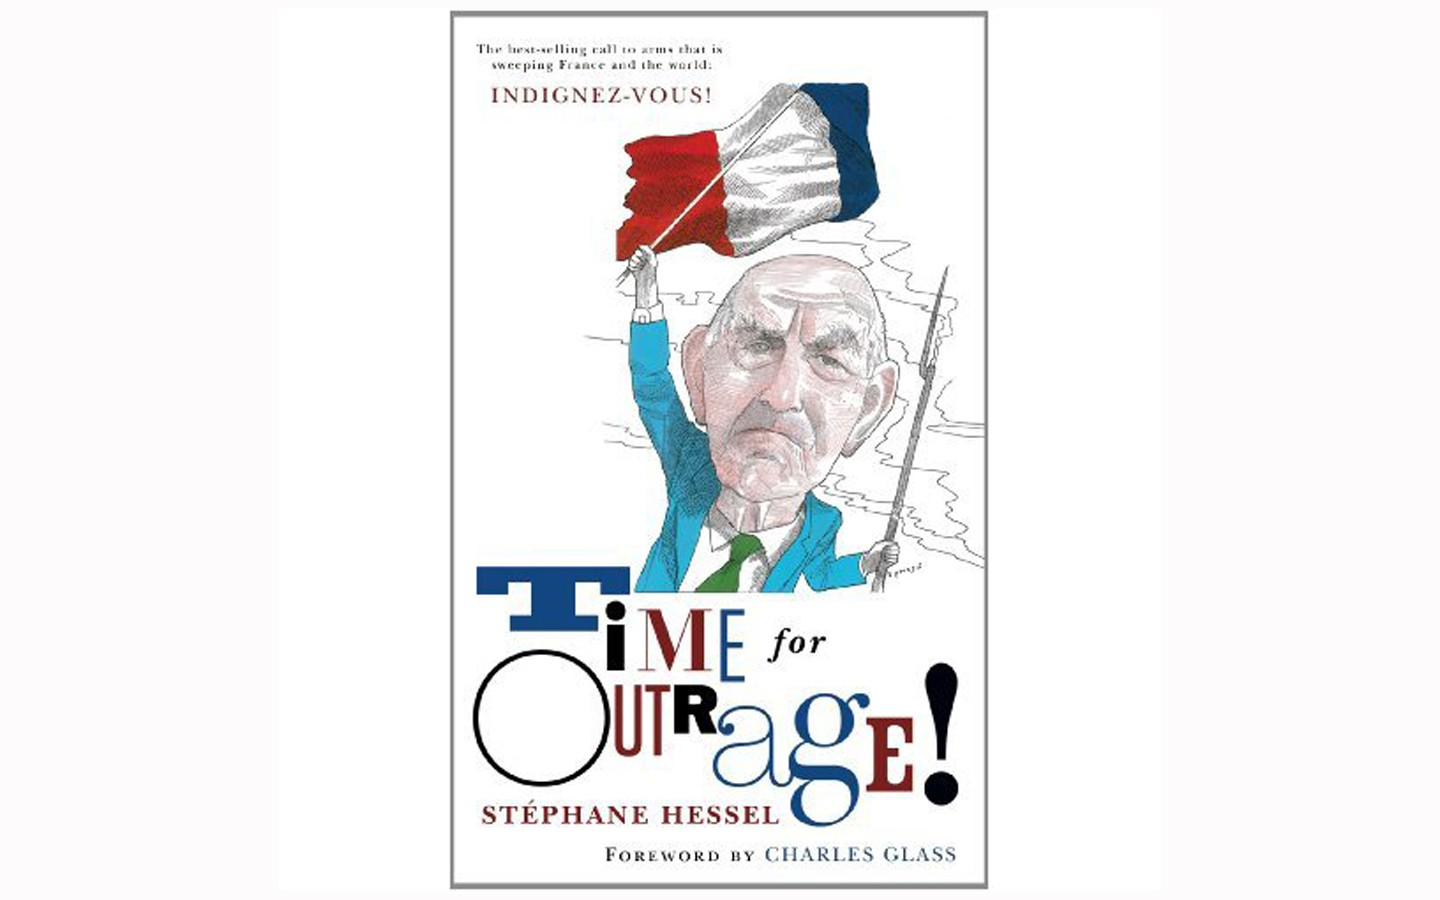 Time for Outrage - BY STÉPHANE HESSEL - QUARTET BOOKS LTD.